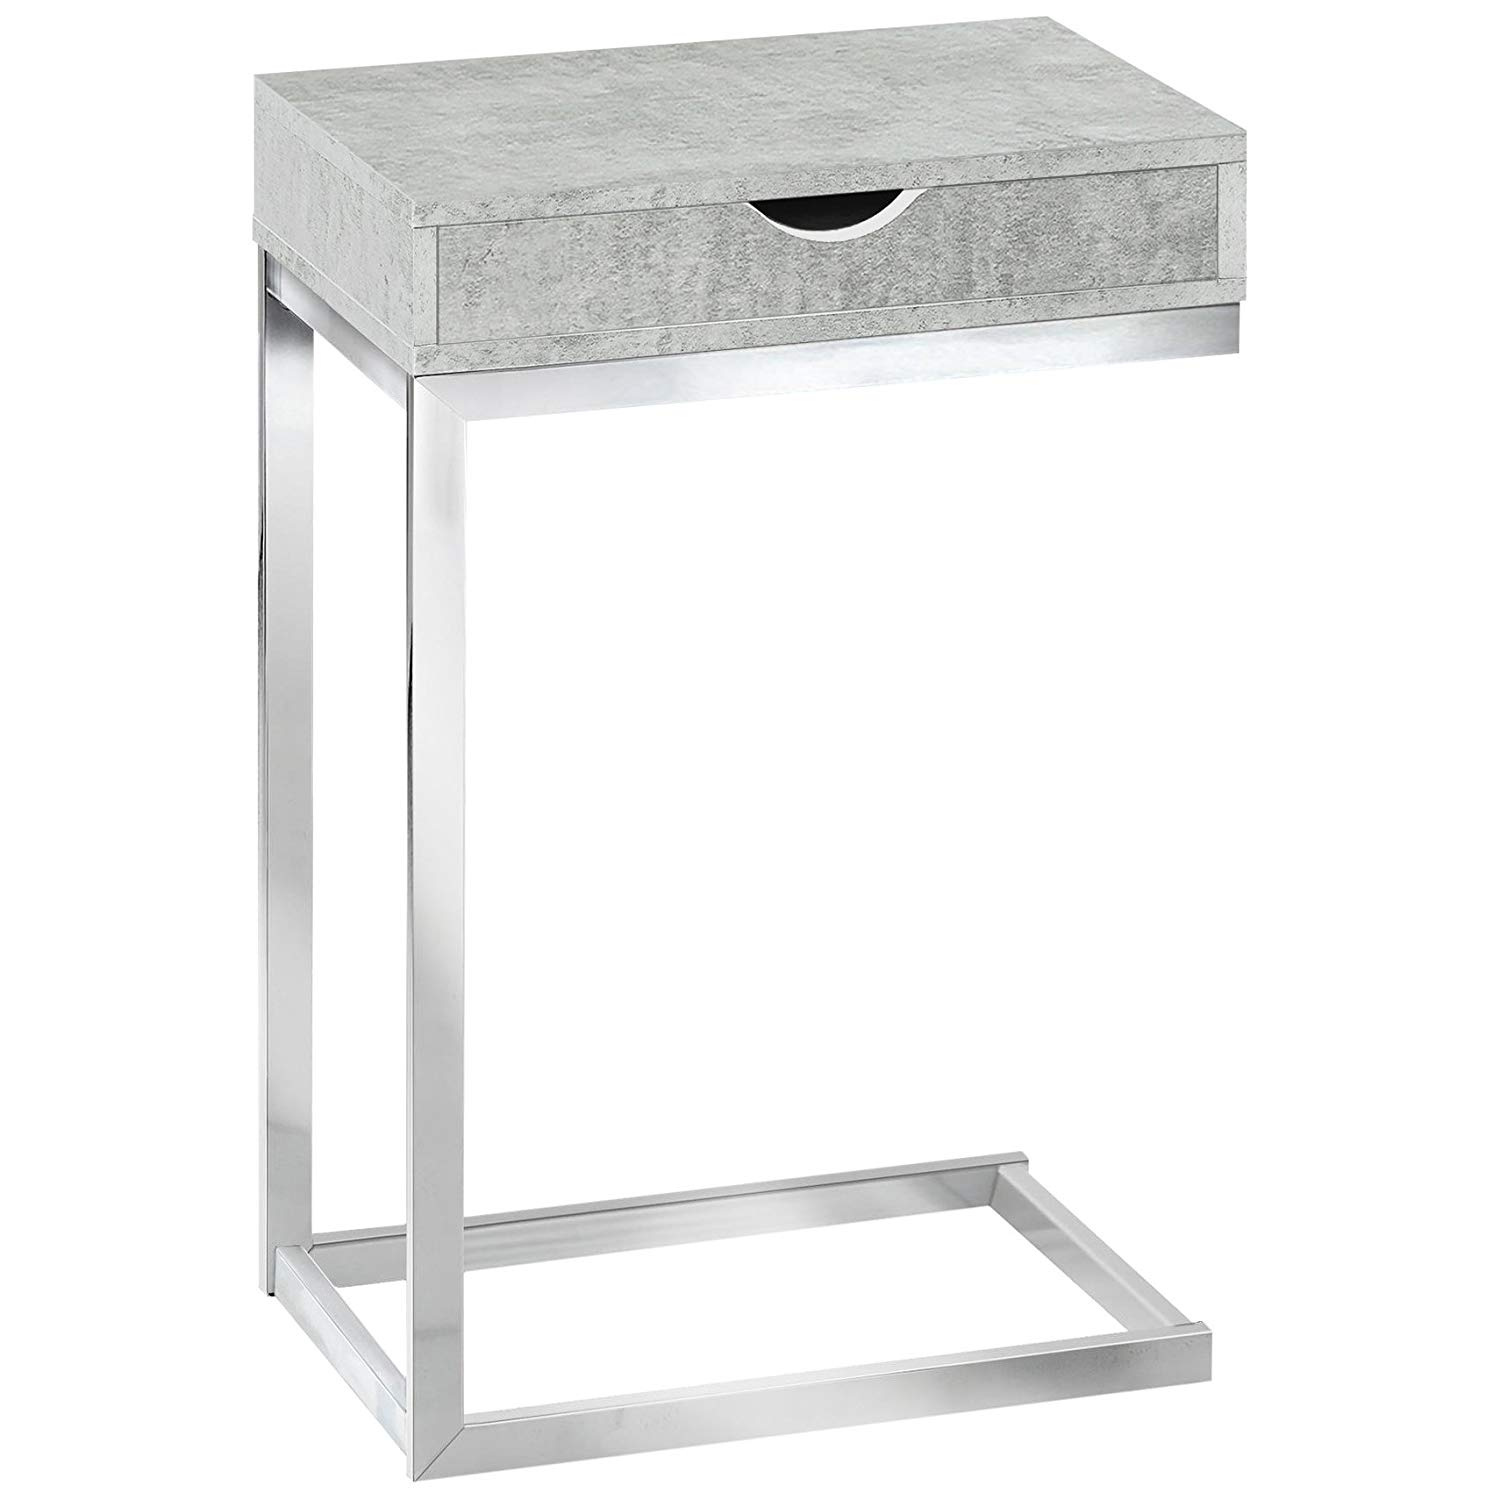 monarch specialties accent table with drawer grey chrome metal dark cement kitchen dining chair covers target small wooden drawers vintage retro furniture counter height bench